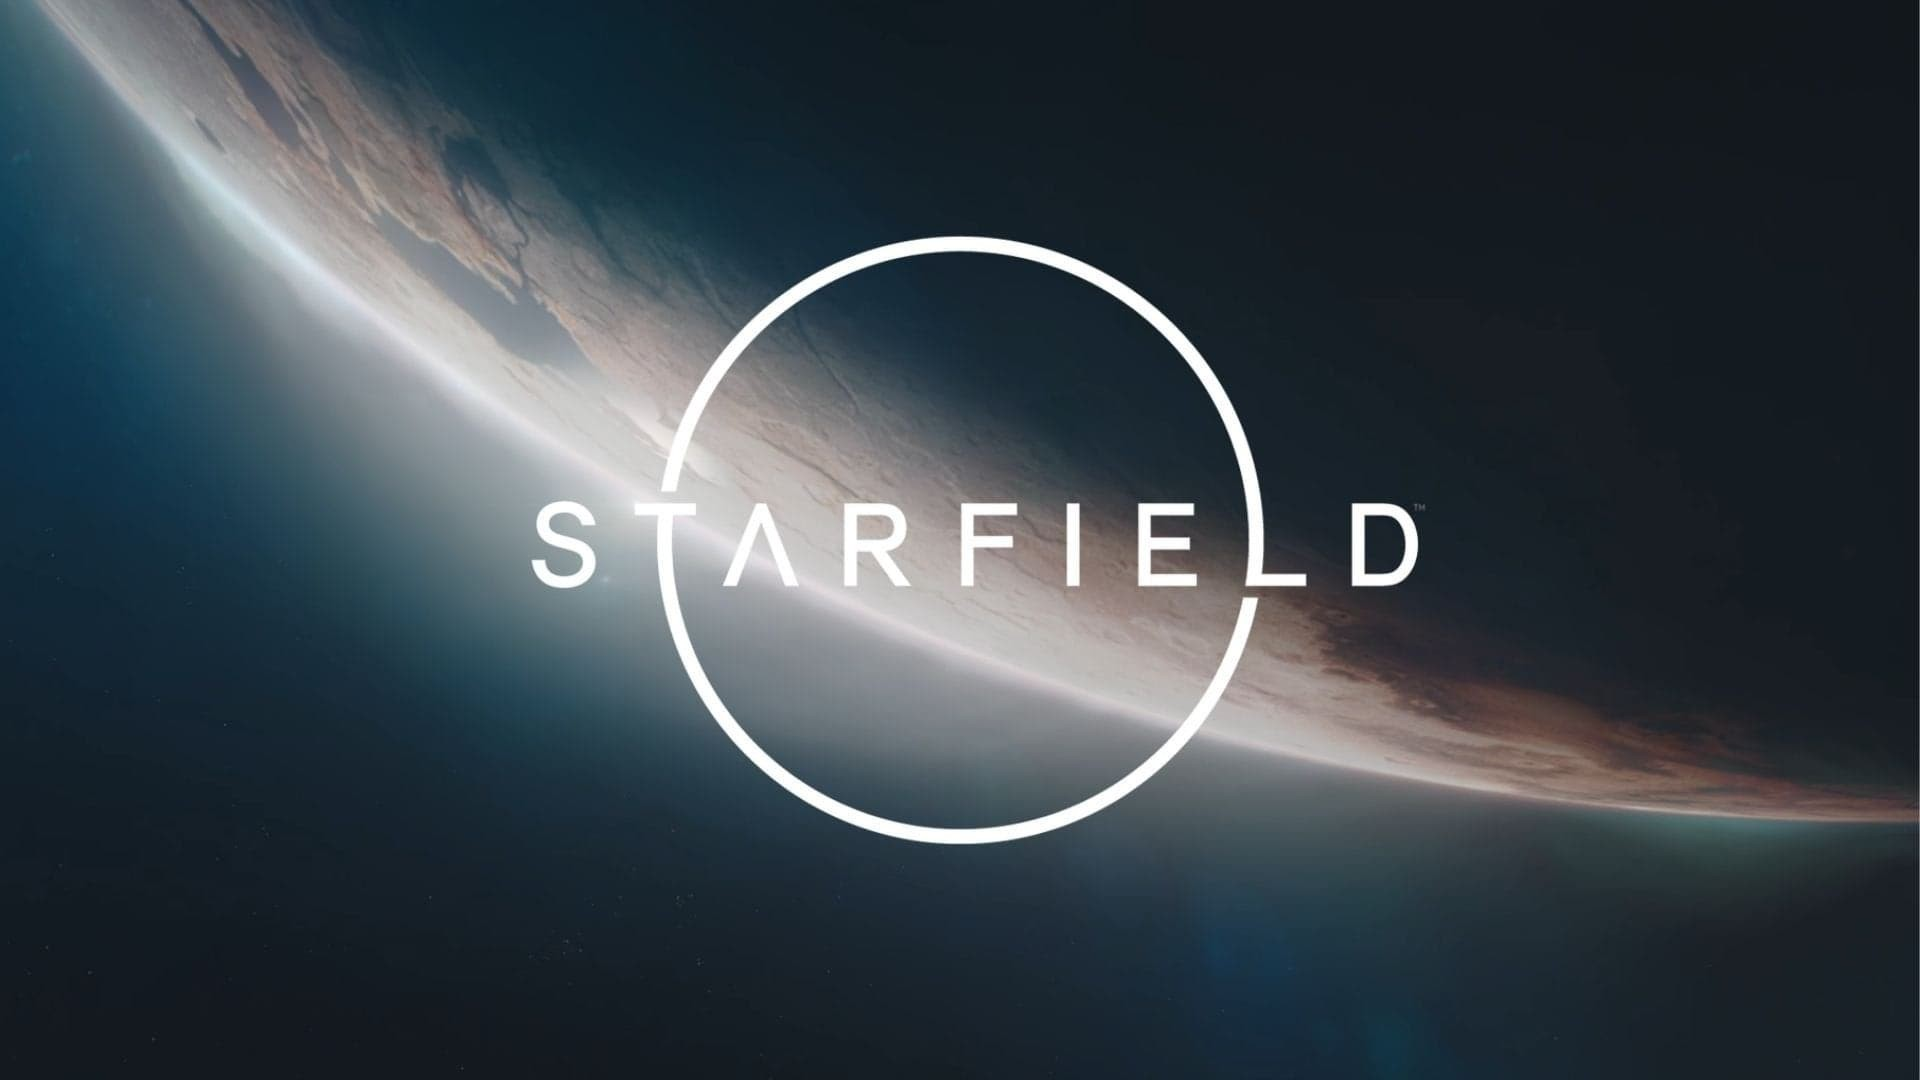 Starfield Logo in space